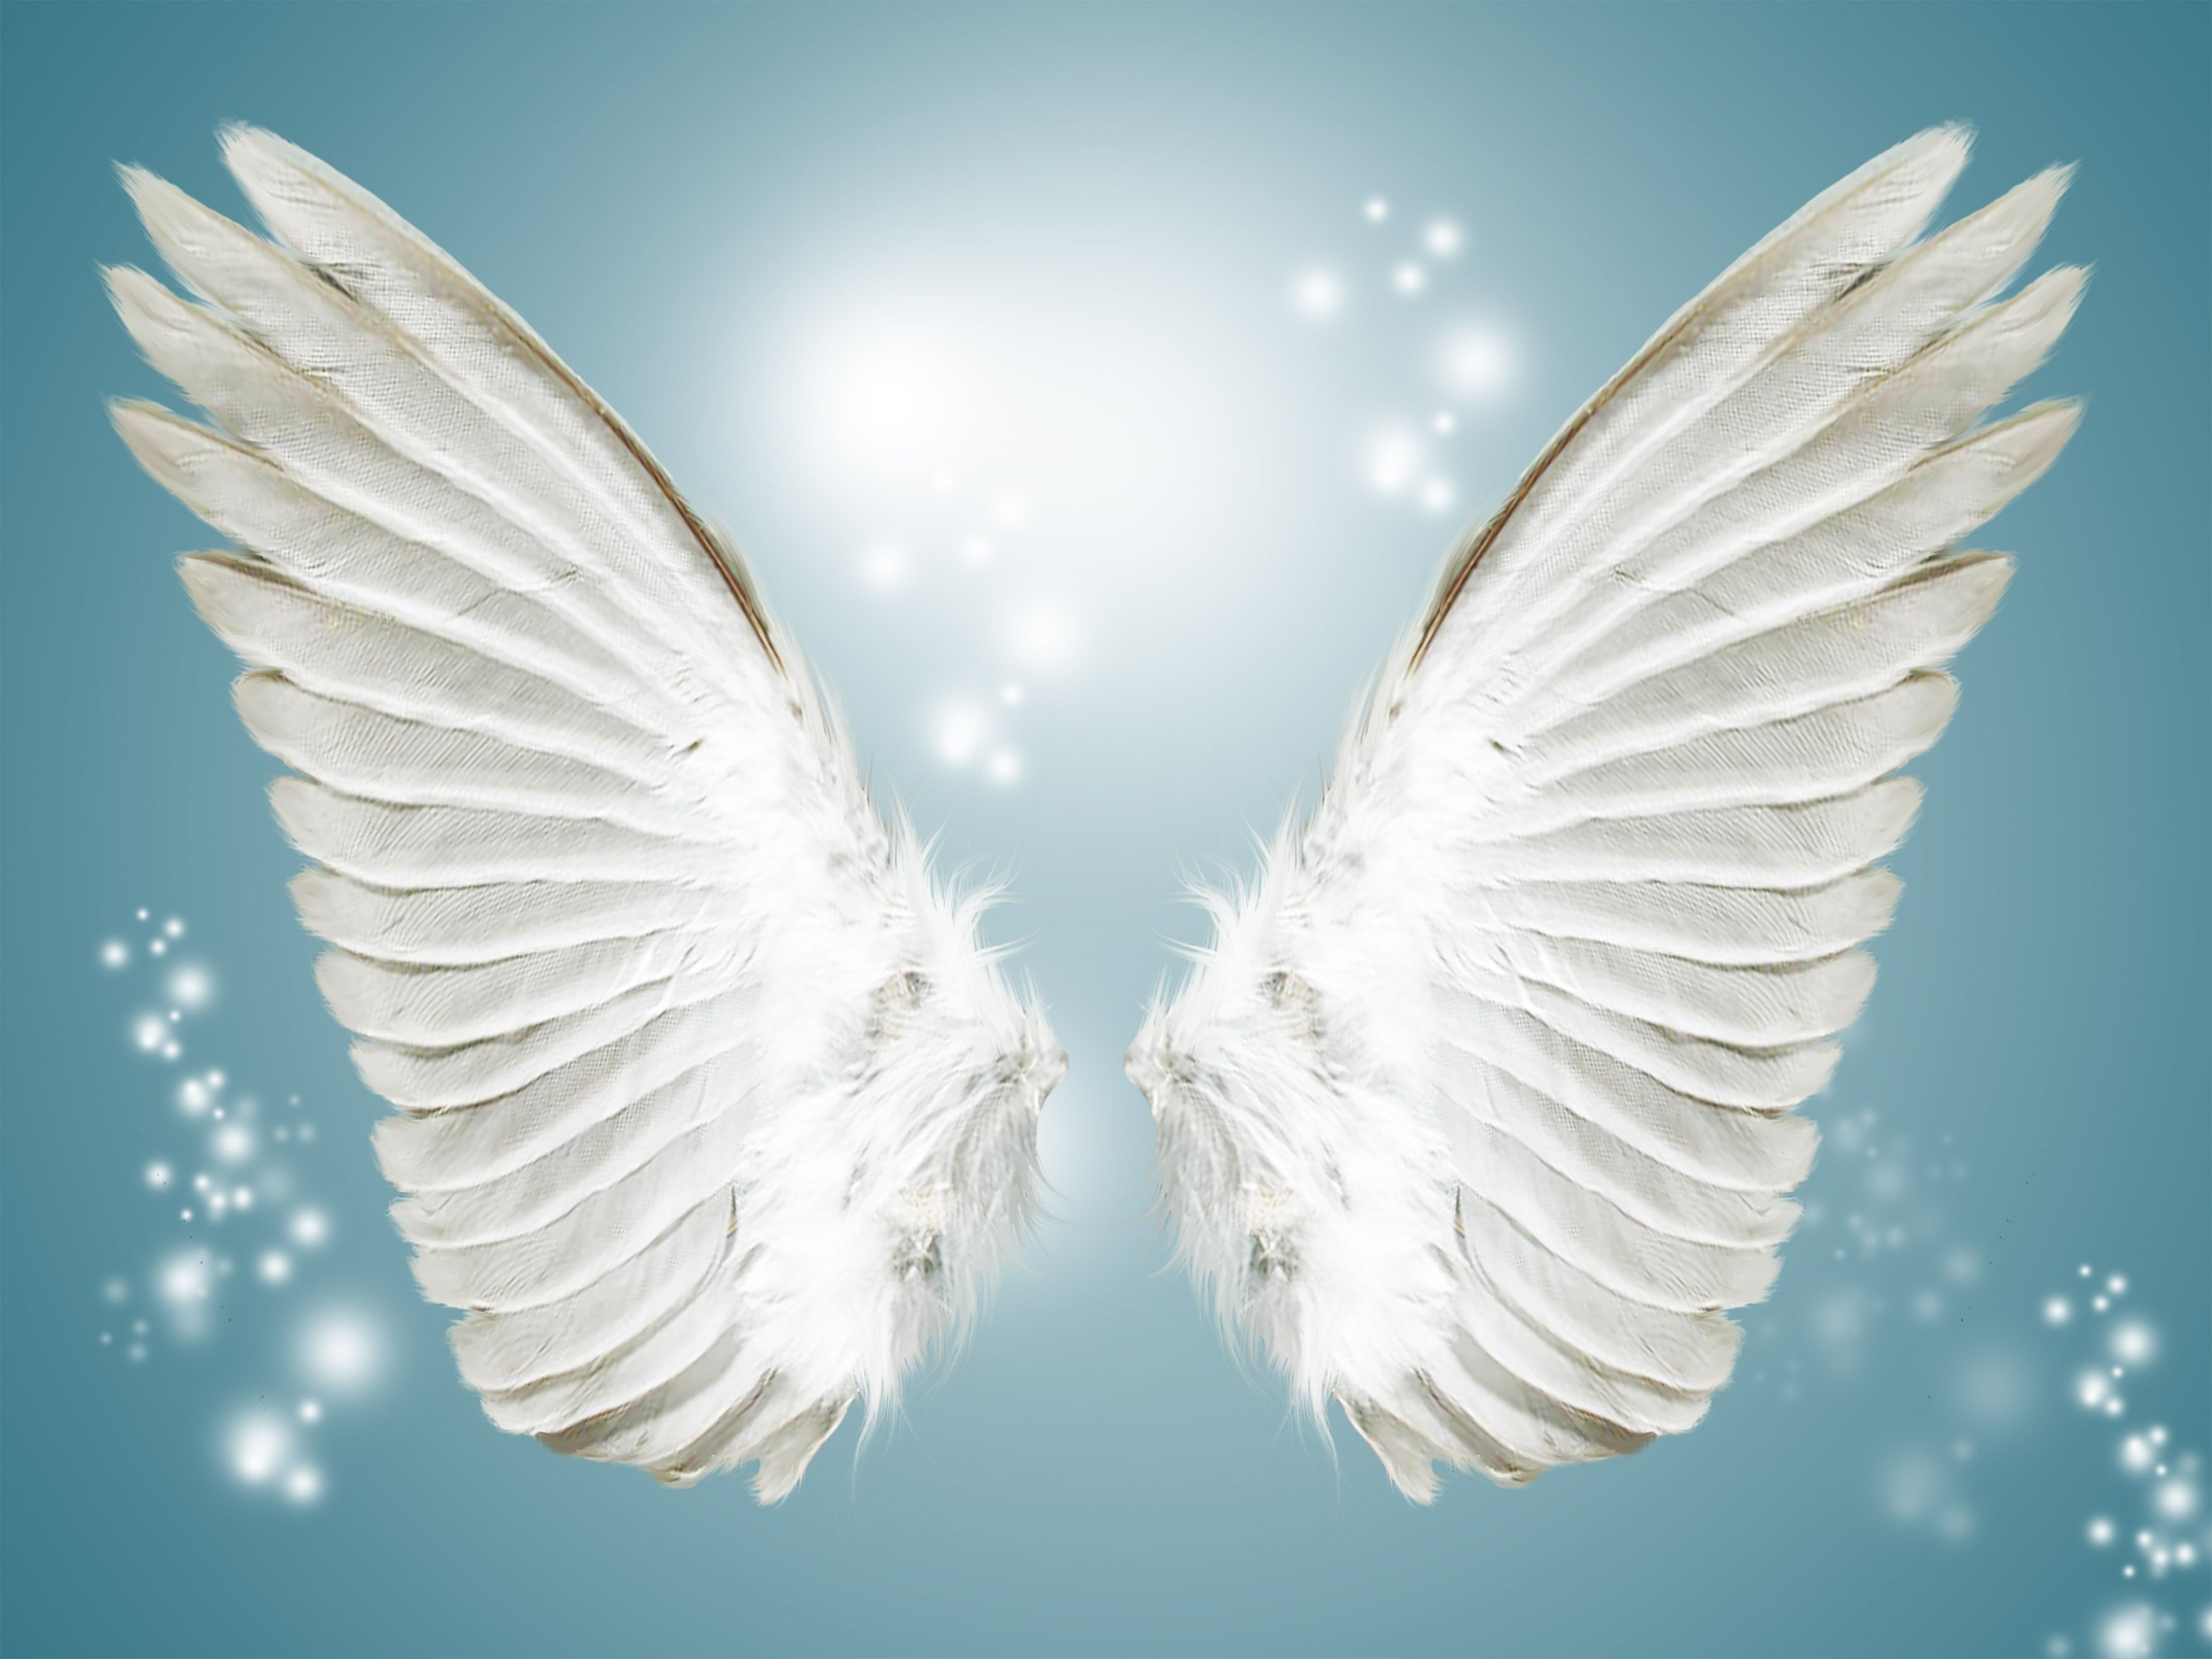 Angel White Wing Background In 2020 Angel Wings Background Angel Wings Pictures Angel Wings Photography